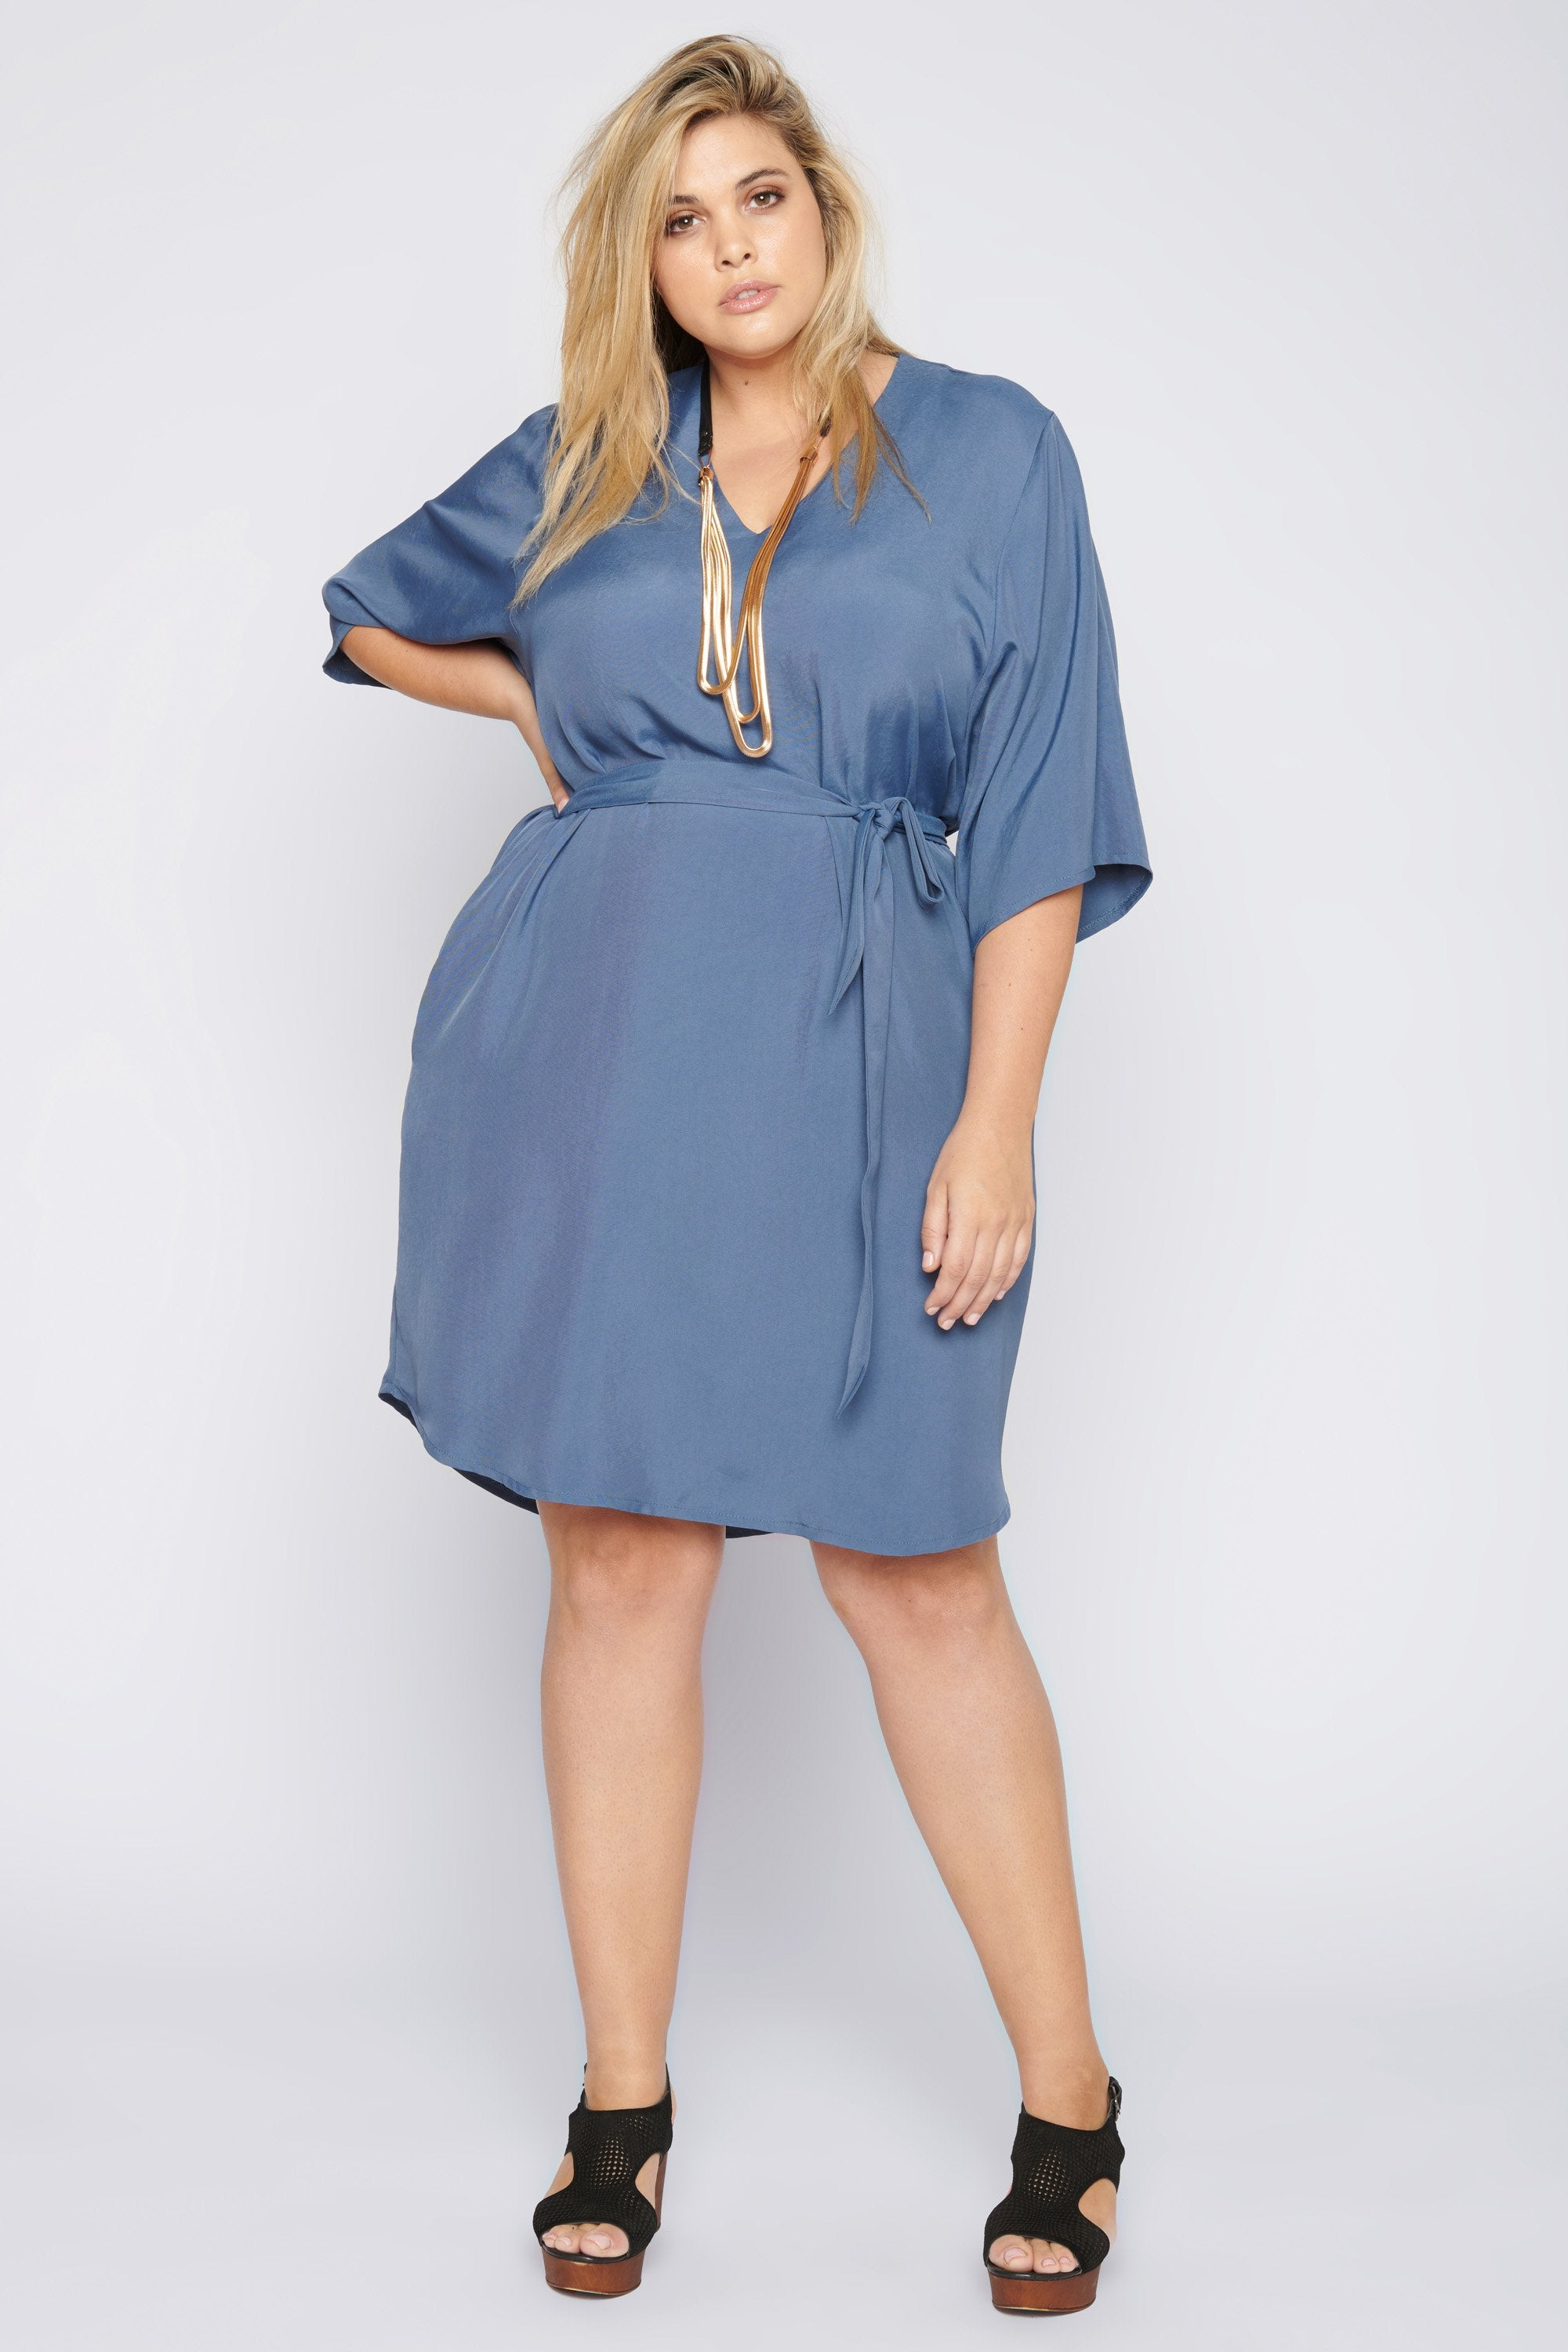 Rock with You Kimono Sleeve Dress - Blue